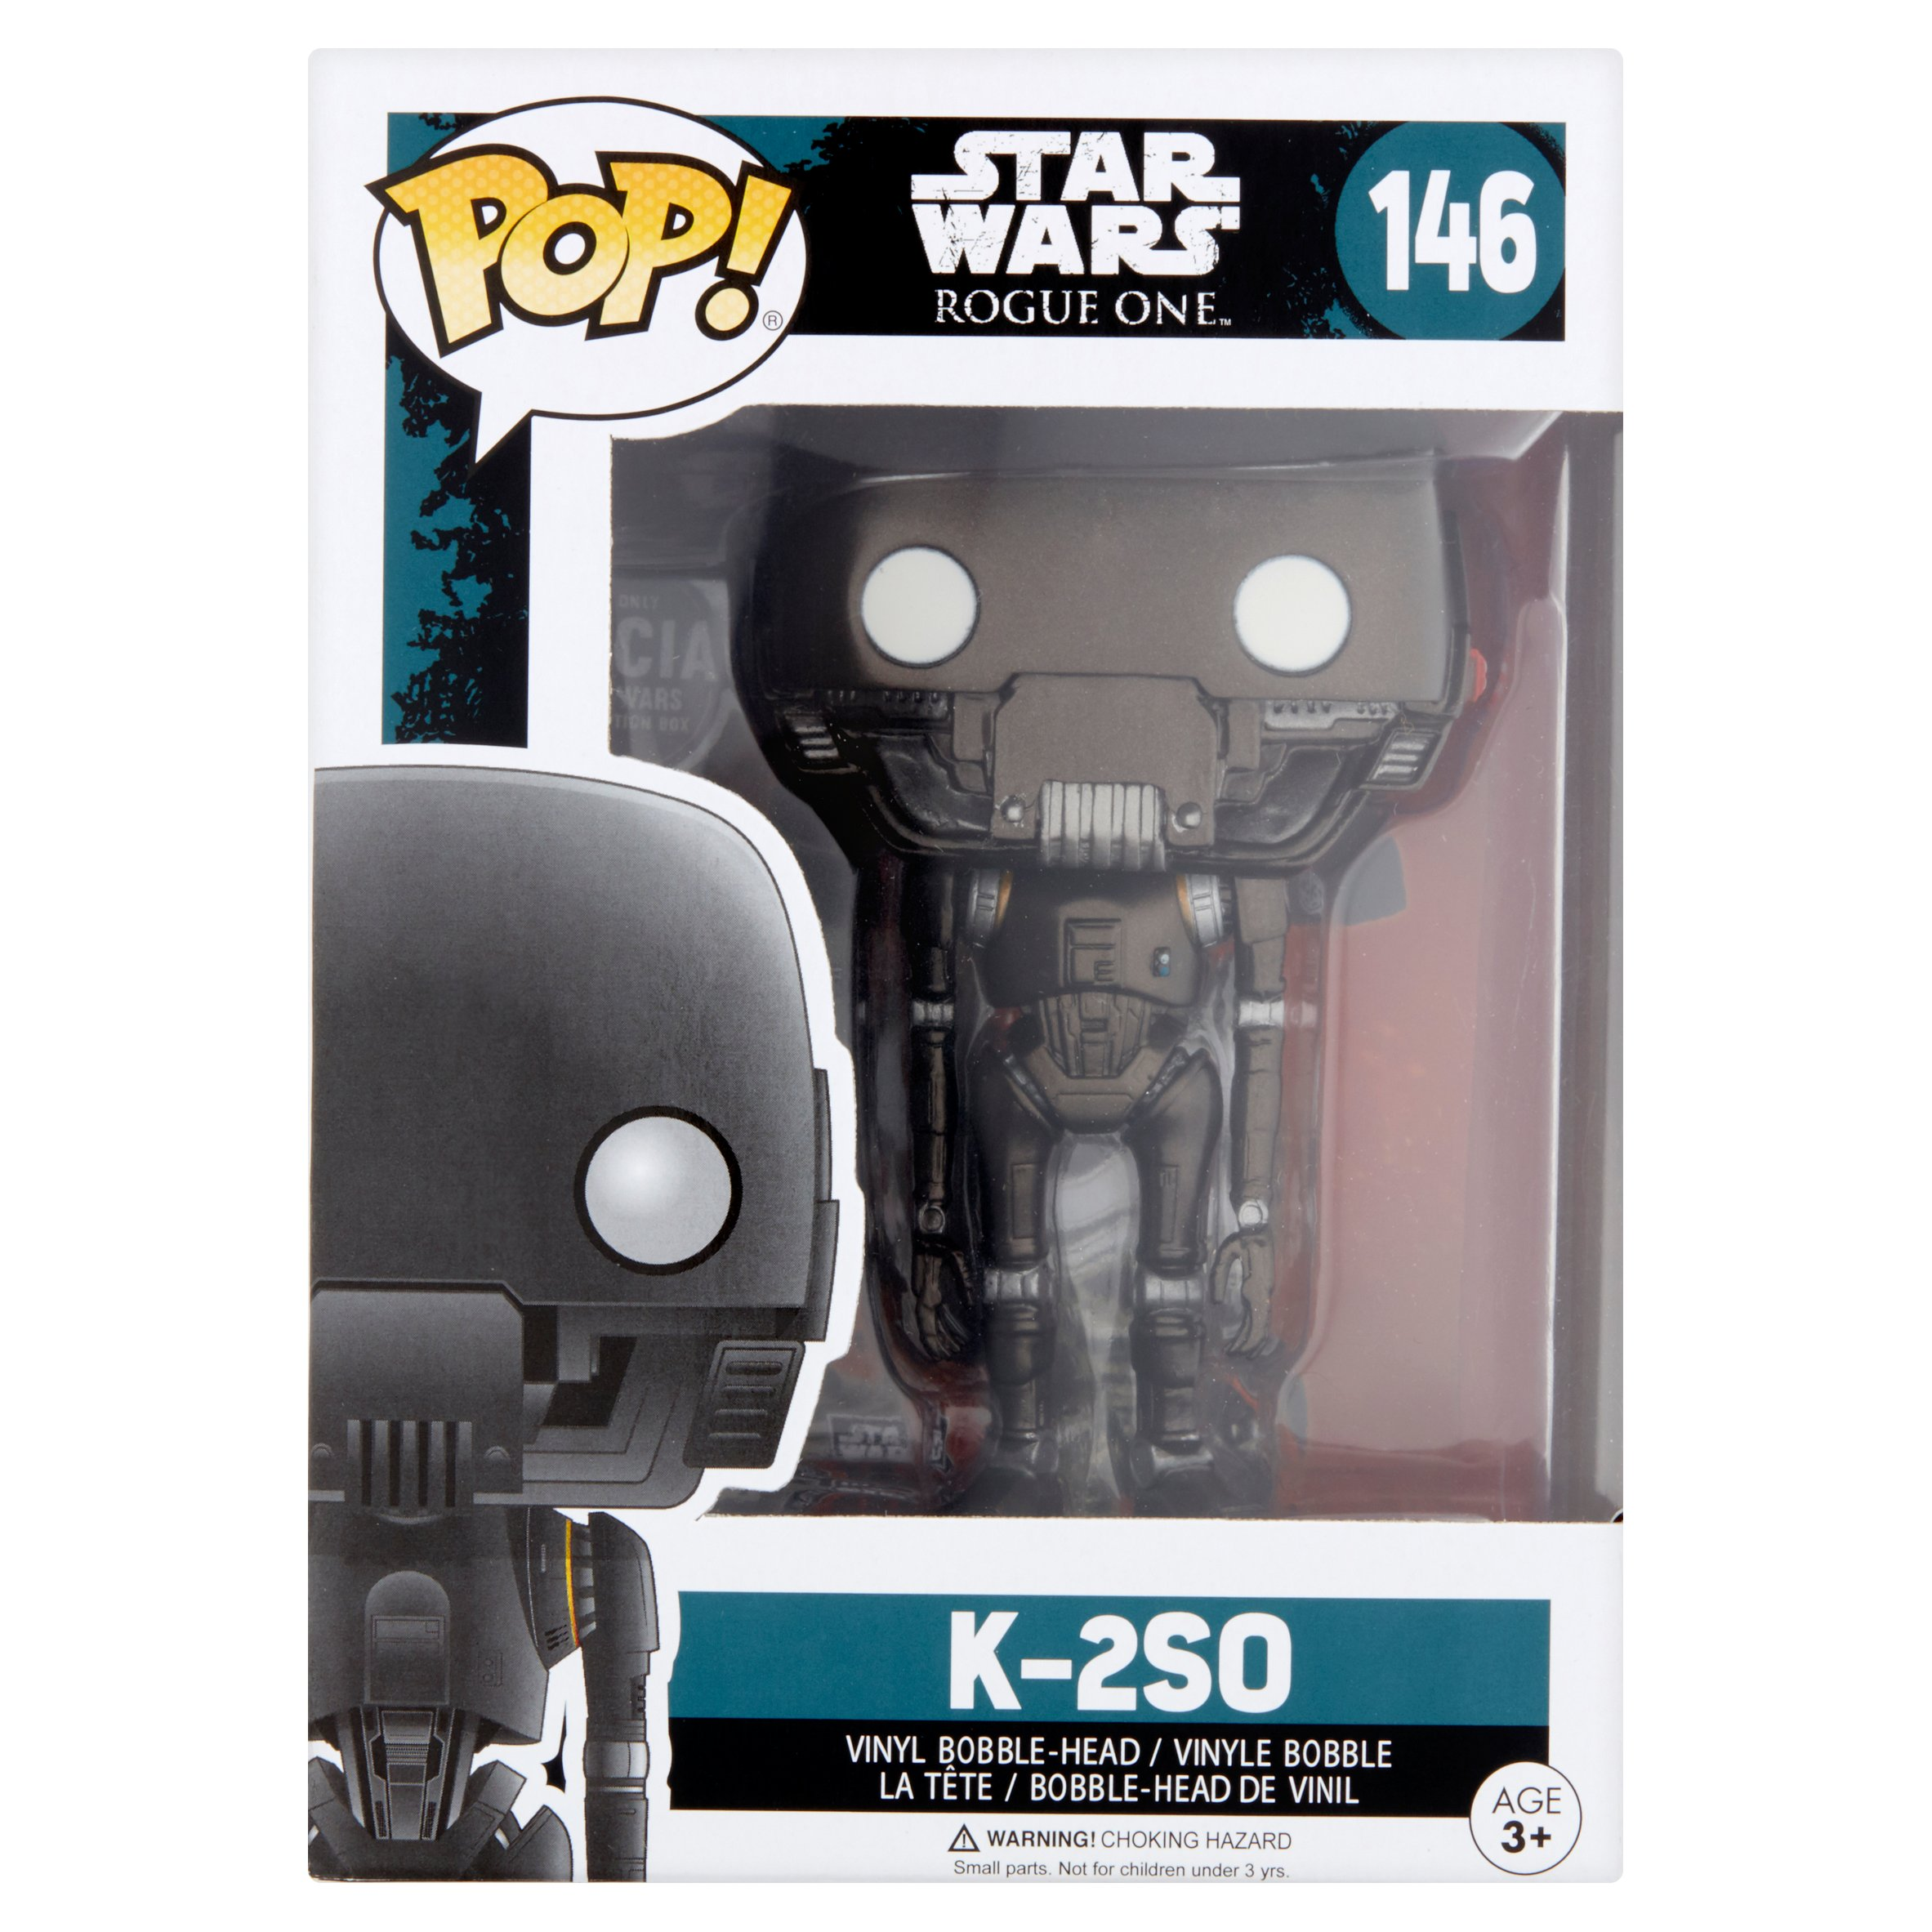 Pop! Star Wars Rogue One K-2S0 146 Vinyl Bobble-Head Age 3+